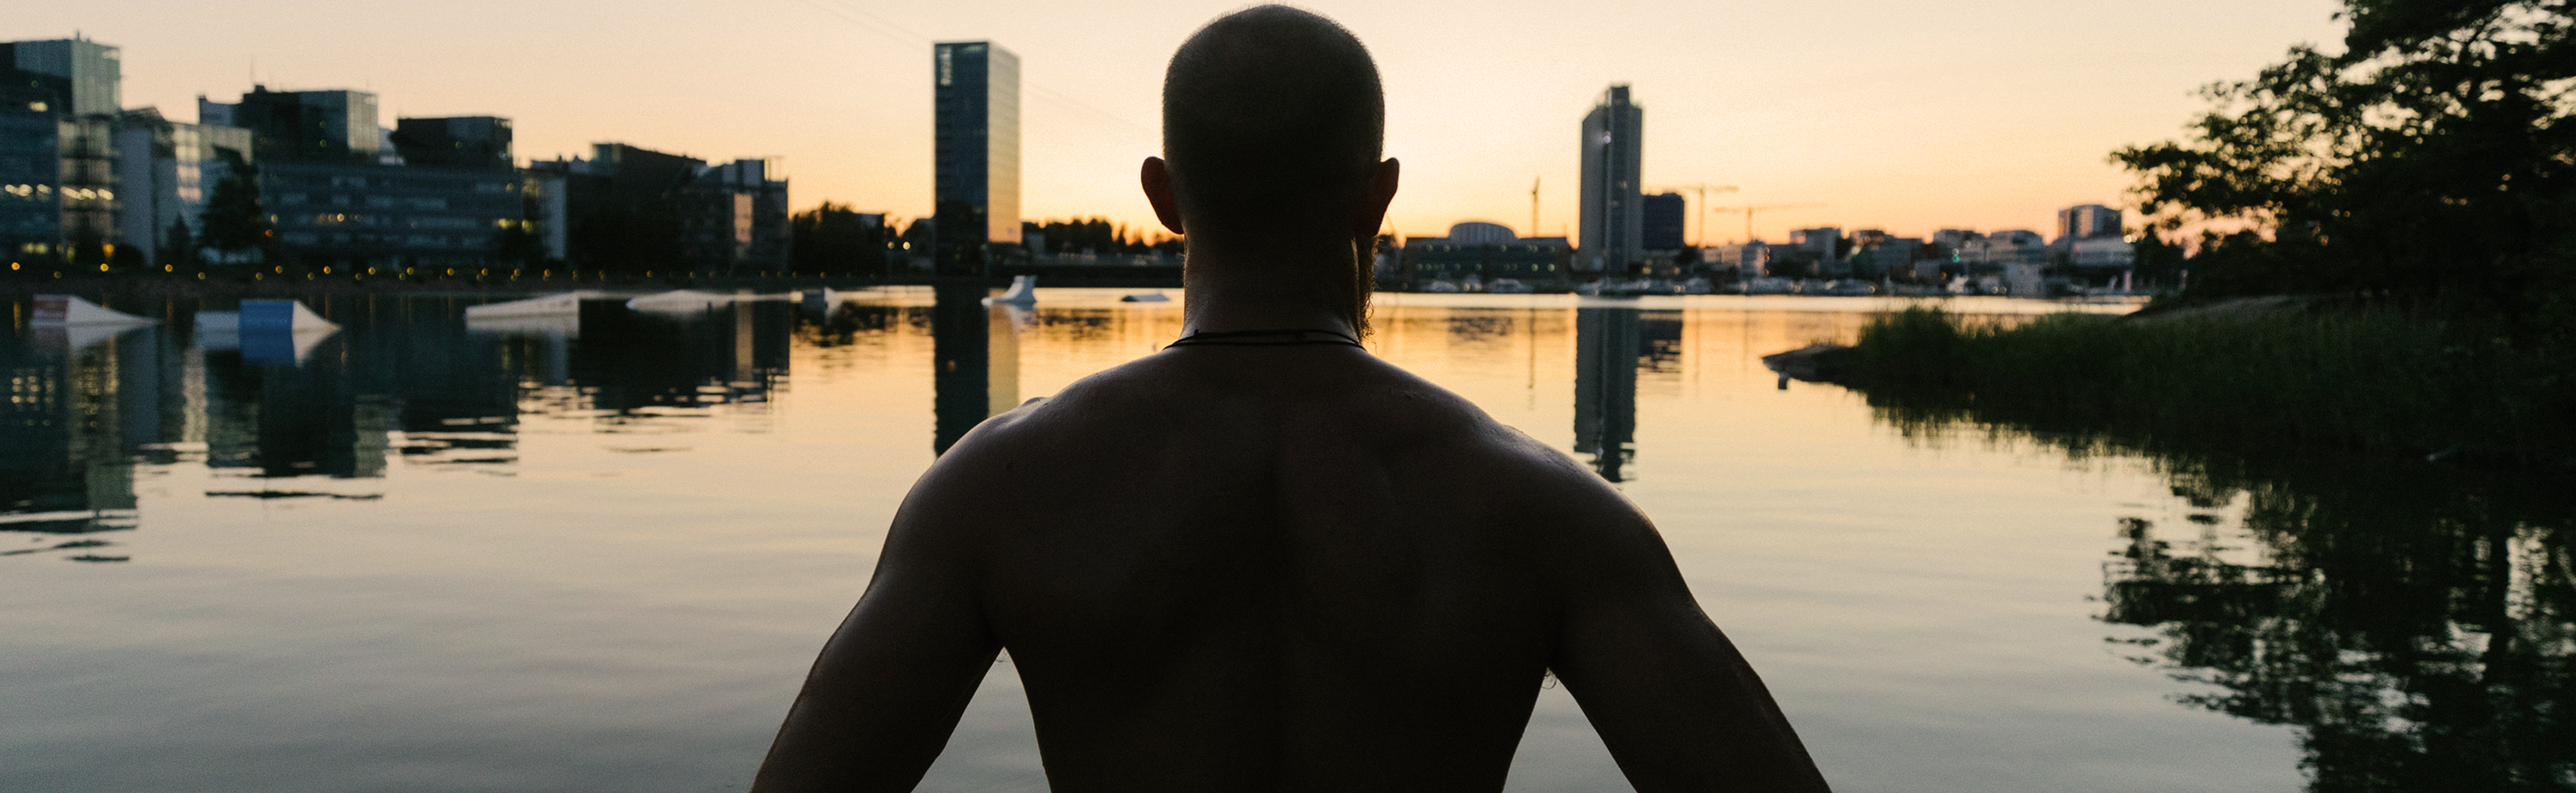 A man watching a summer evening sunset. The horizon shows office buildings in the Keilaniemi area.